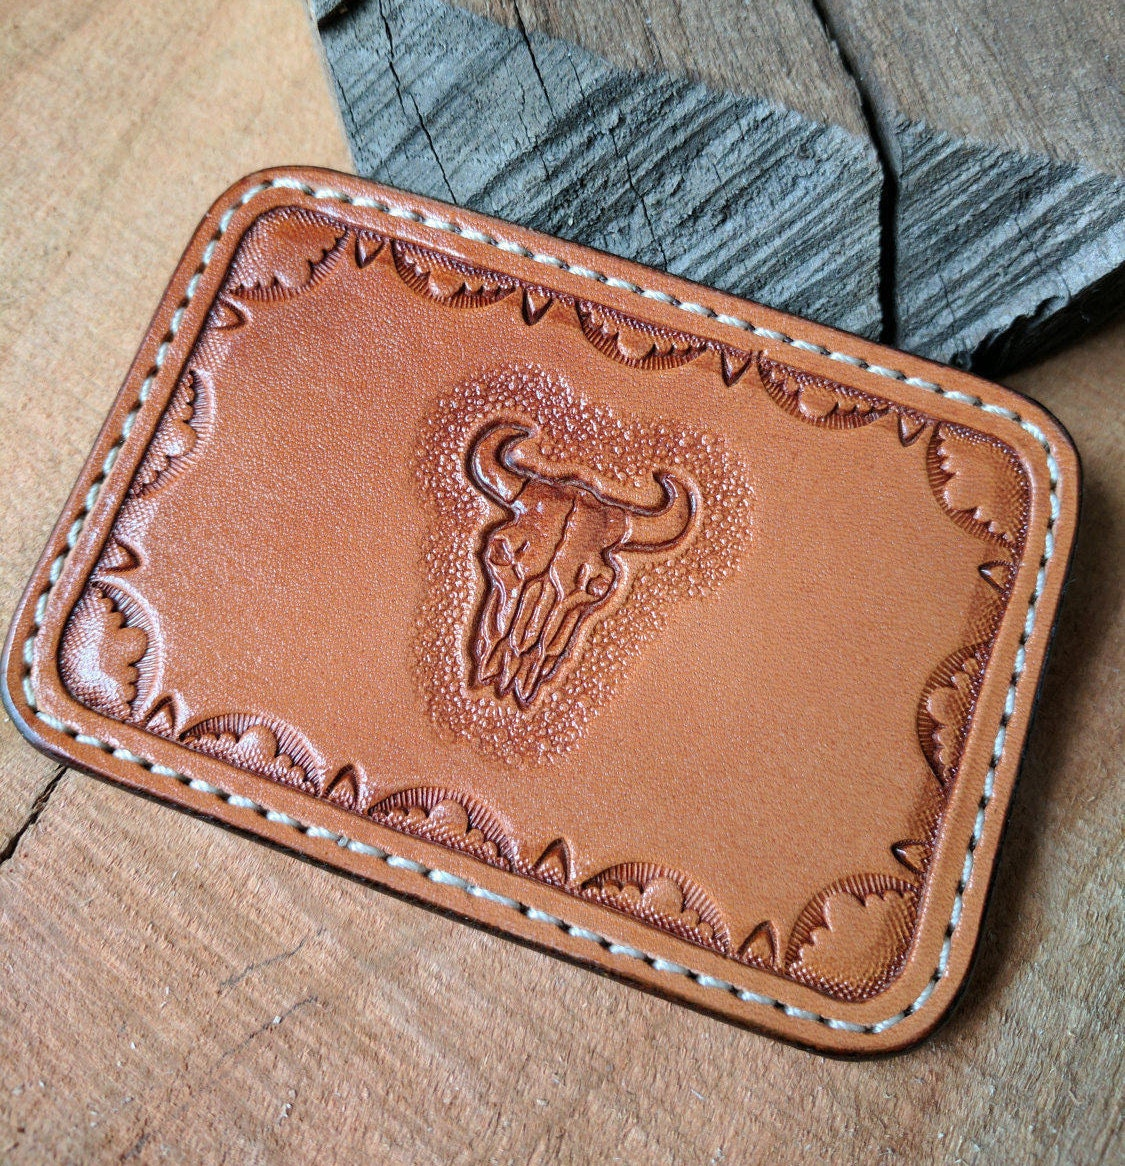 Leather idbusiness card holder with 3 pockets hand tooled and cow leather idbusiness card holder with 3 pockets hand tooled and cow skull stamped magicingreecefo Choice Image